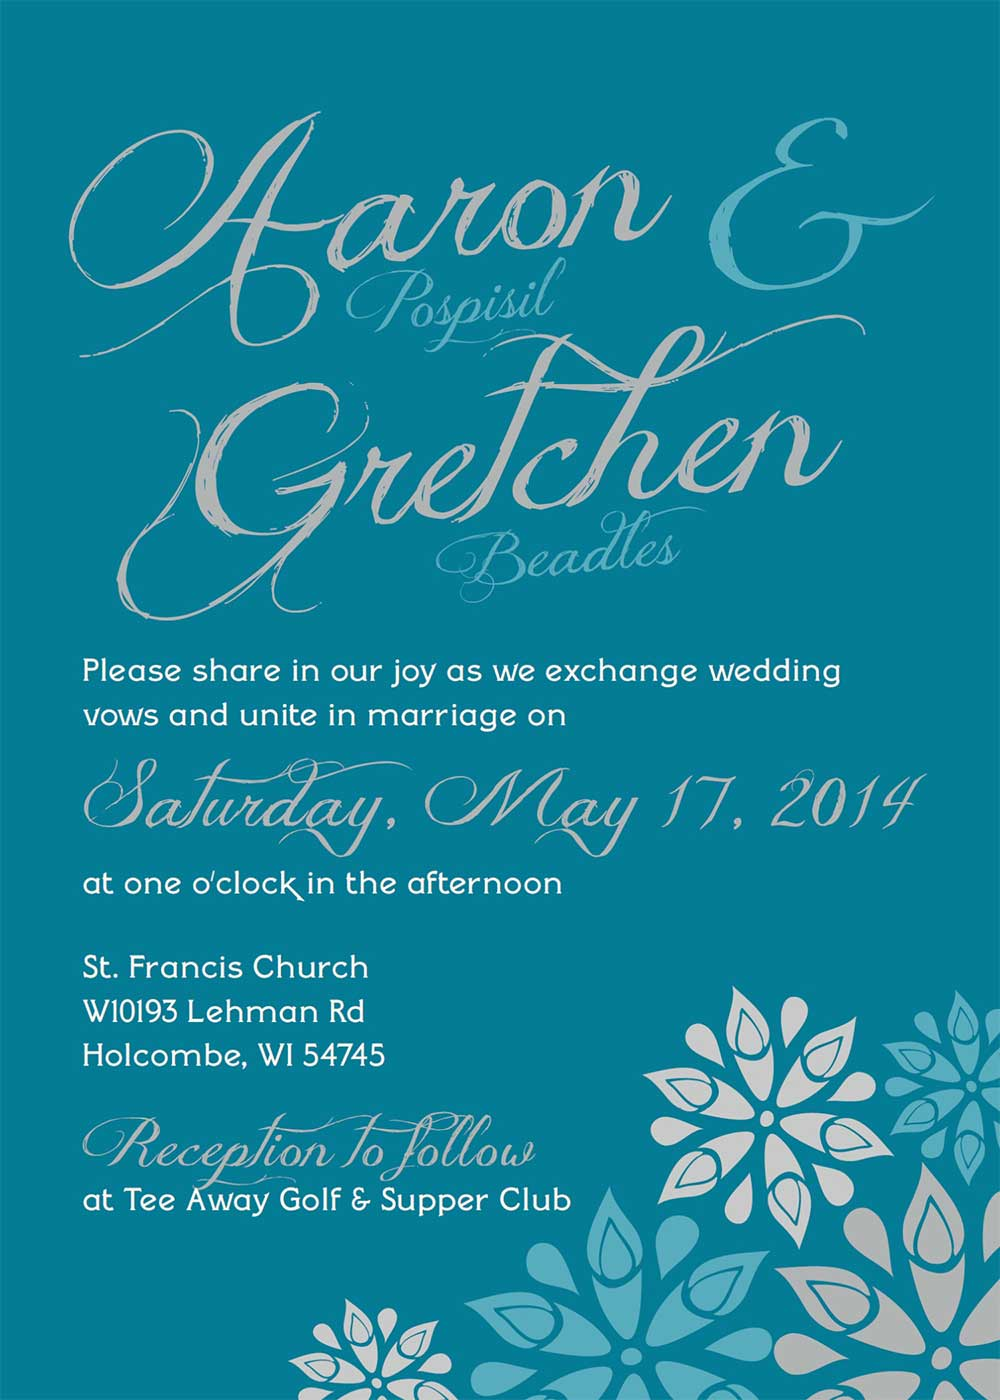 Wedding Stationery - Quality Quick Print - Eau Claire Printing, Banners and Signs